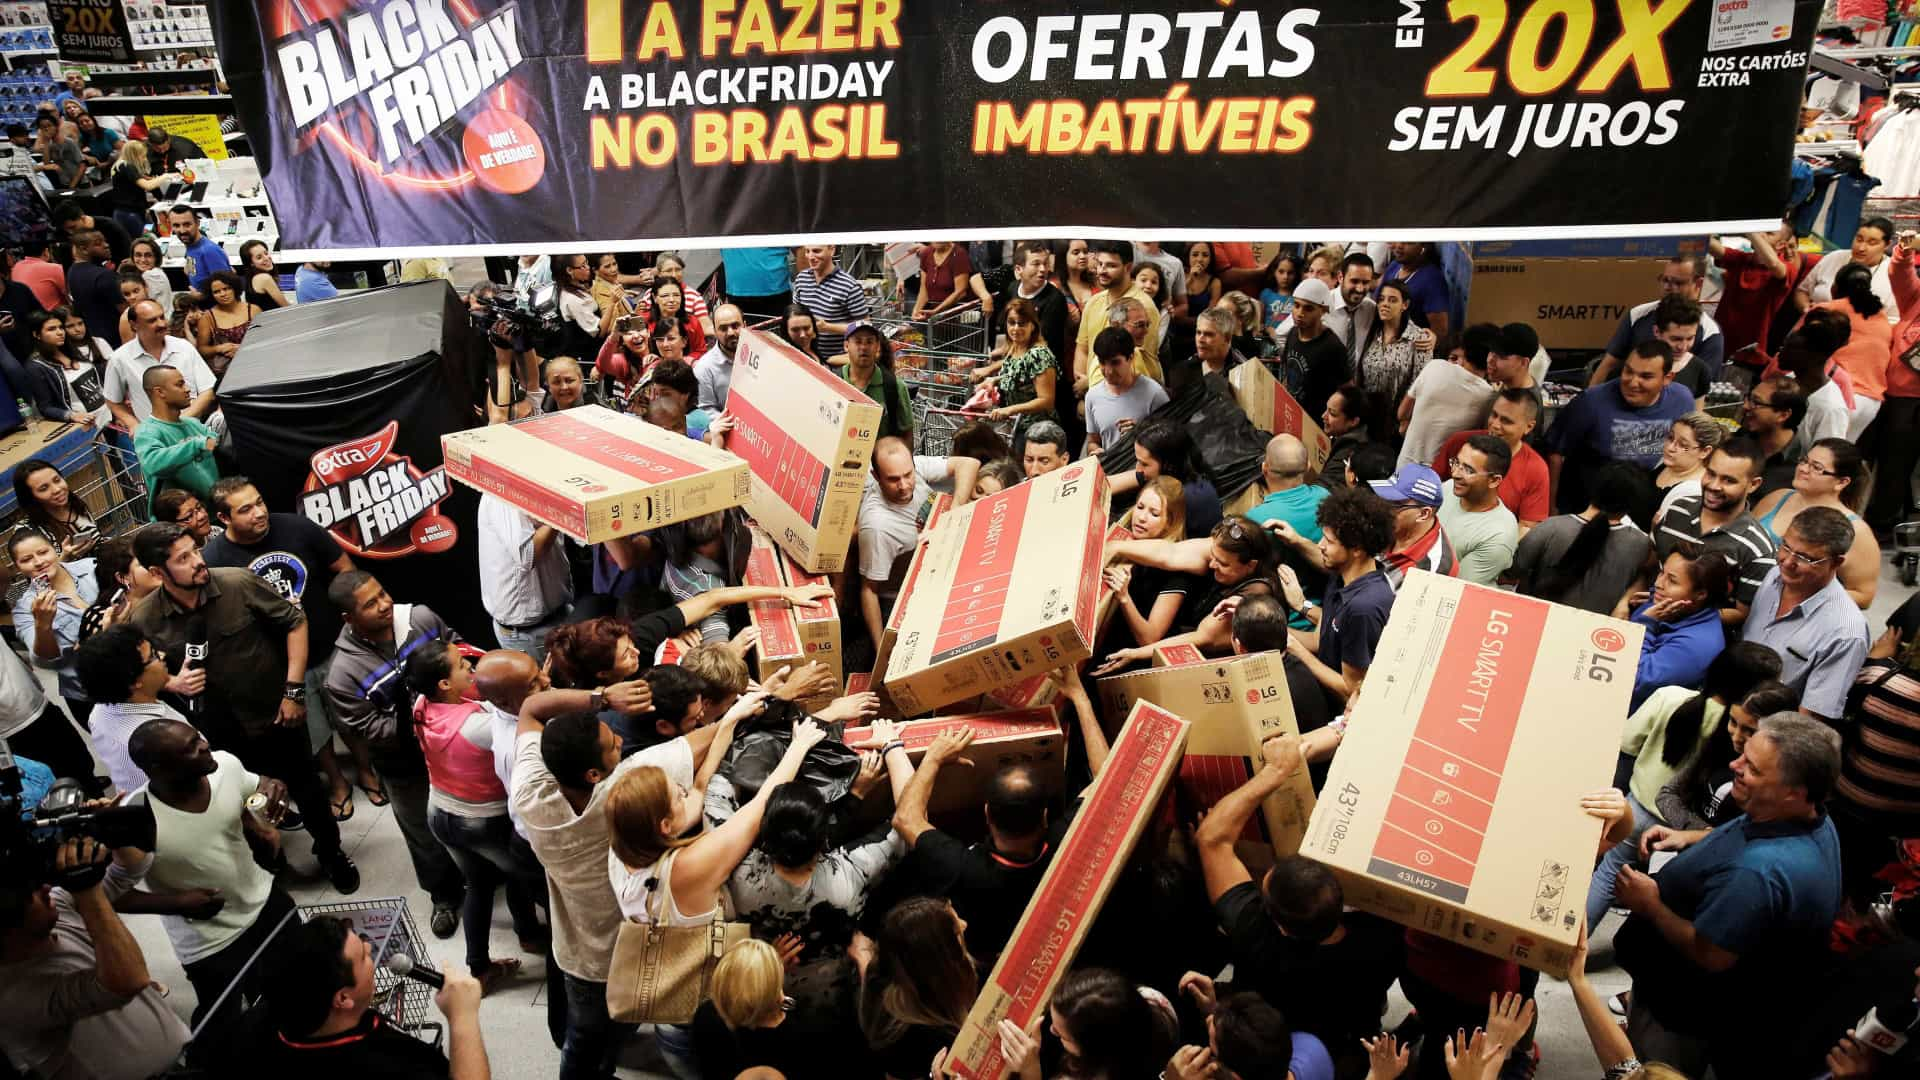 Especialistas alertam para riscos de golpes na Black Friday